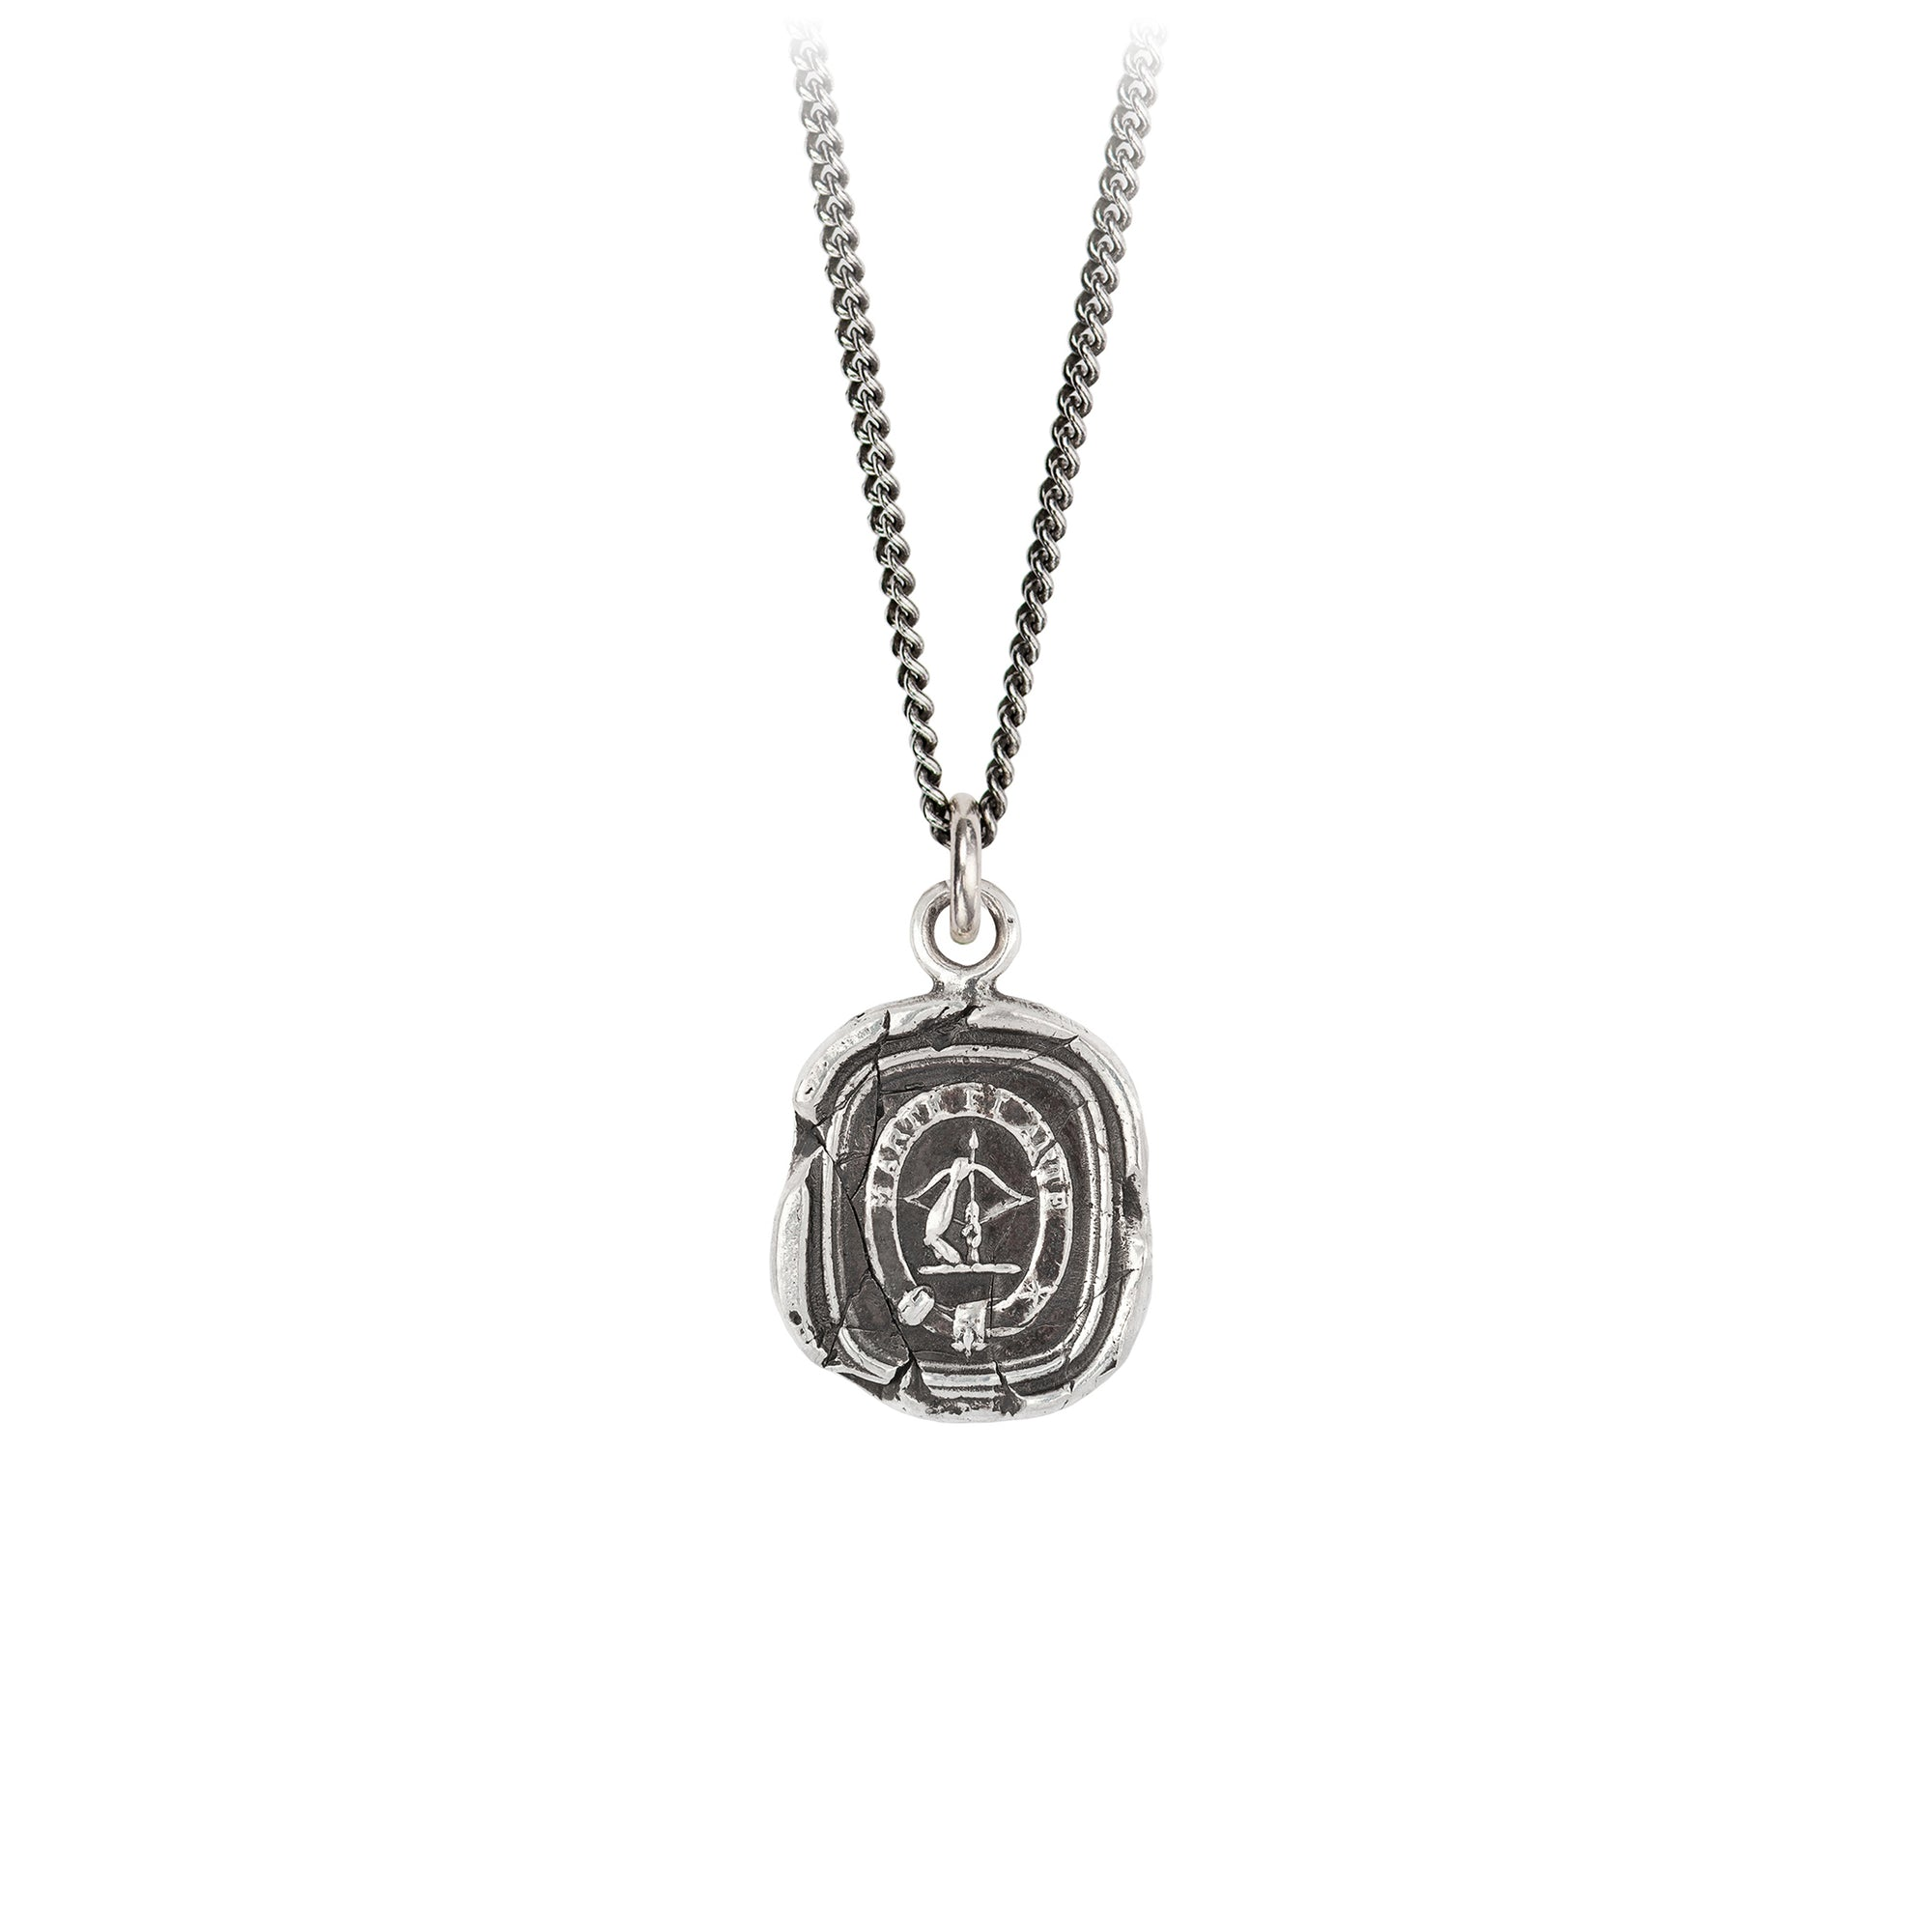 Pyrrha Strength and Skill Talisman Necklace Fine Curb Chain Silver